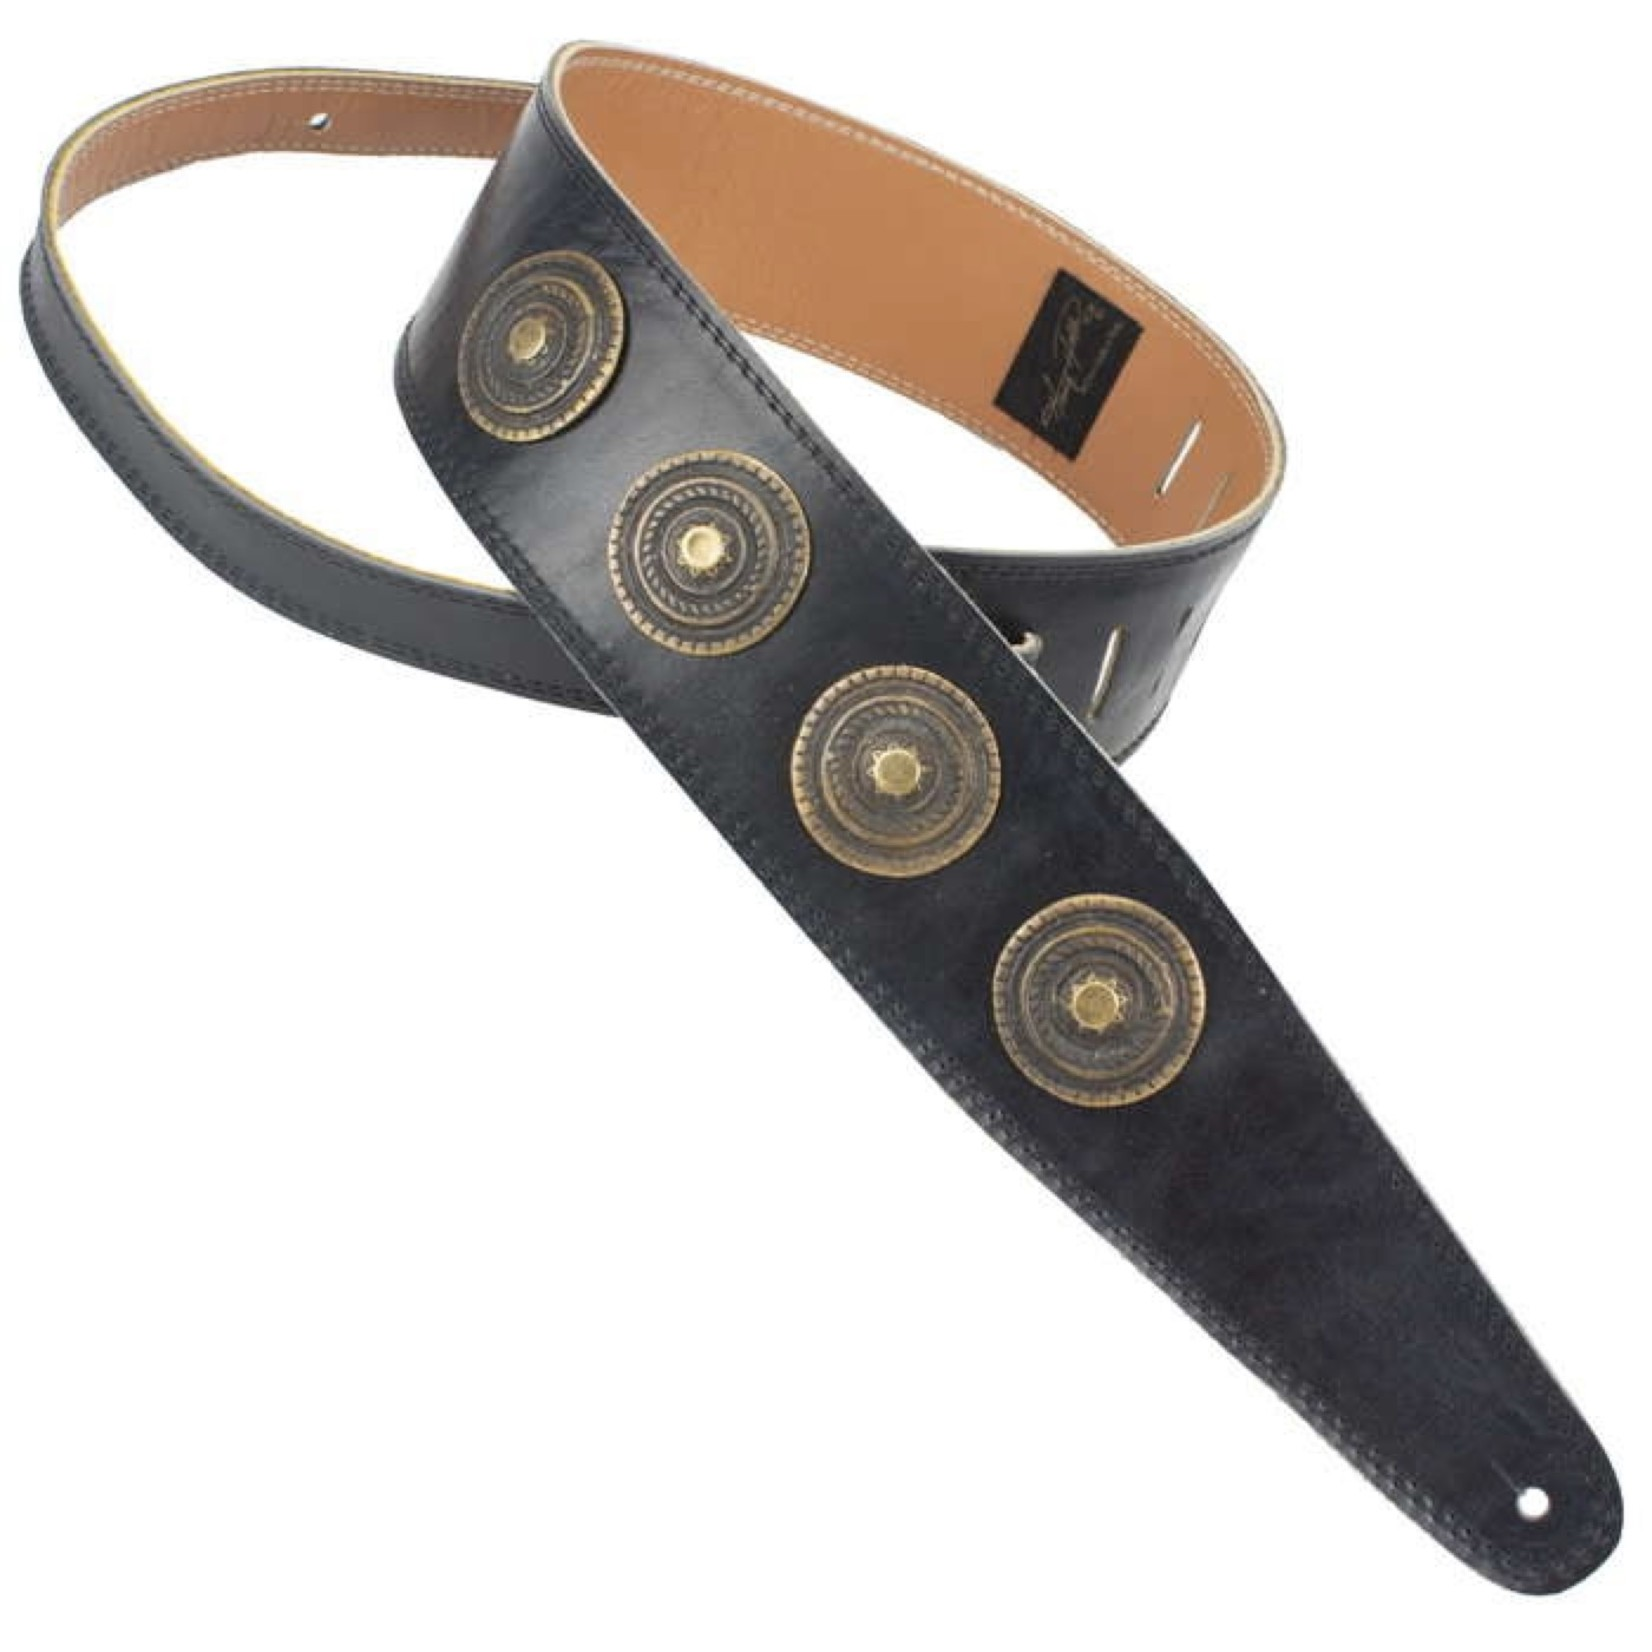 "Henry Heller Henry Heller Peru 2.5"" Antiqued Leather Concho Medallion Guitar/Bass Strap, Black"